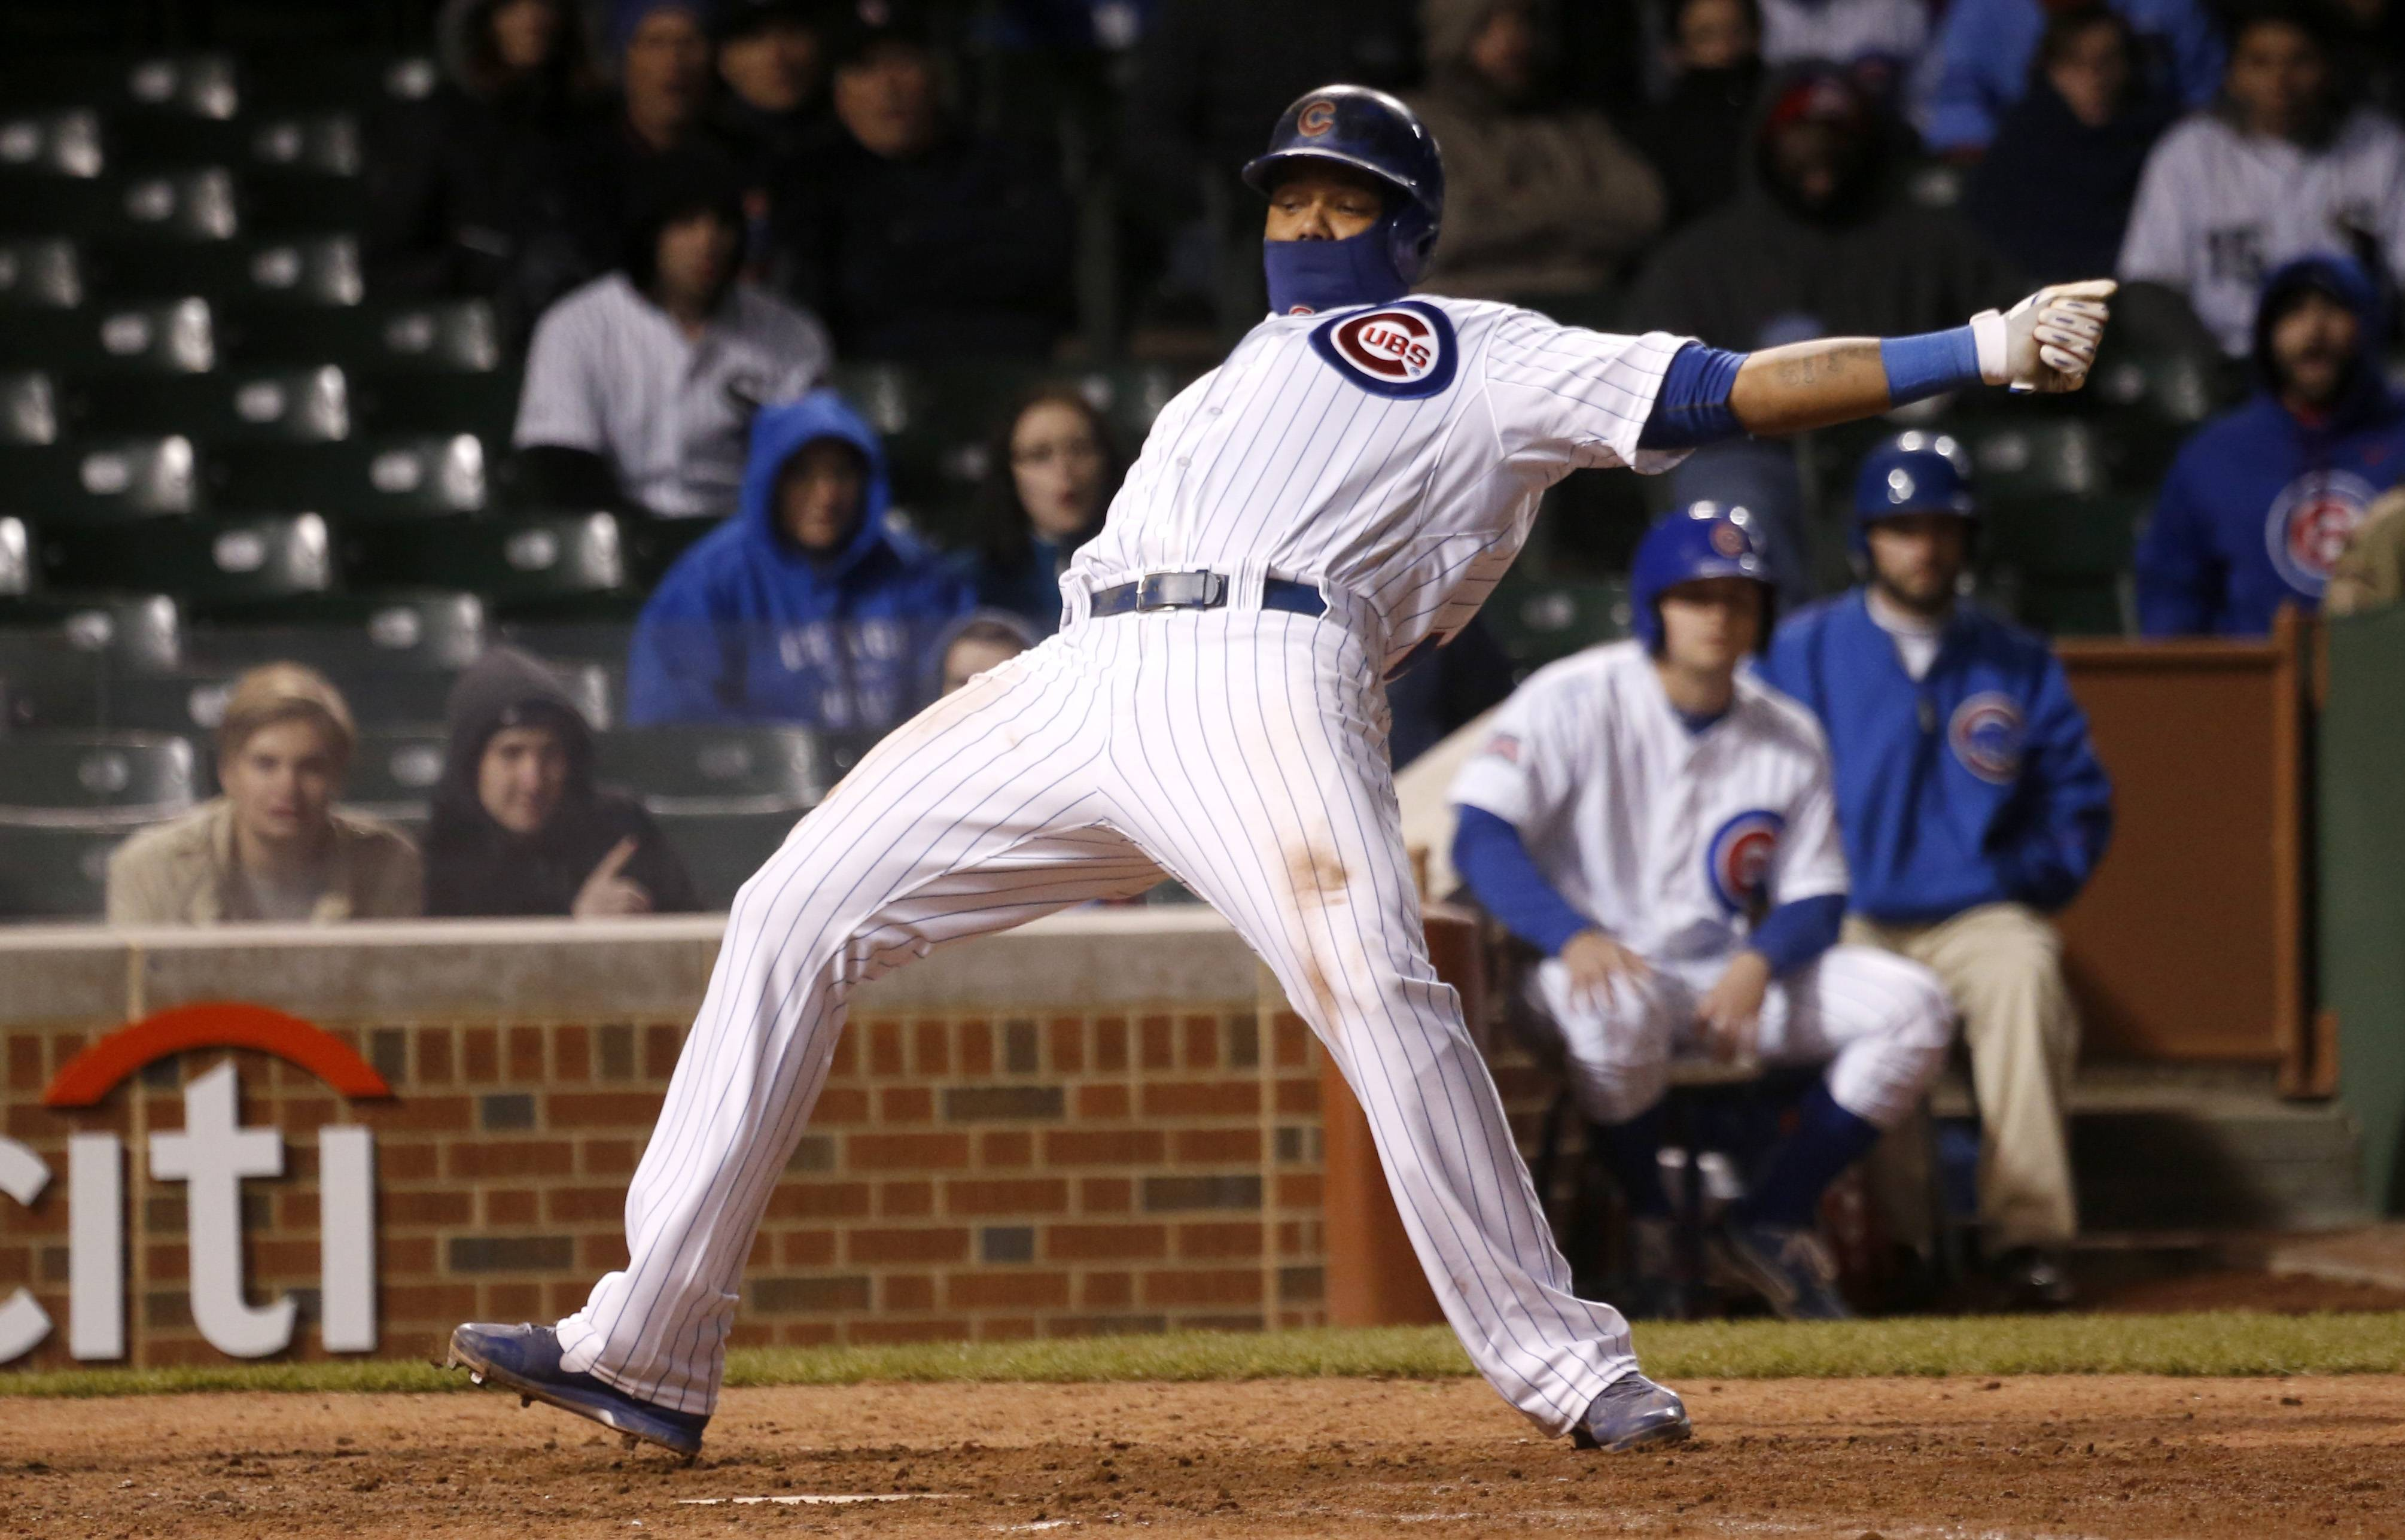 The Cubs' Starlin Castro is brushed back from the plate by a pitch from White Sox relief pitcher Daniel Webb during the 11th inning Monday night.